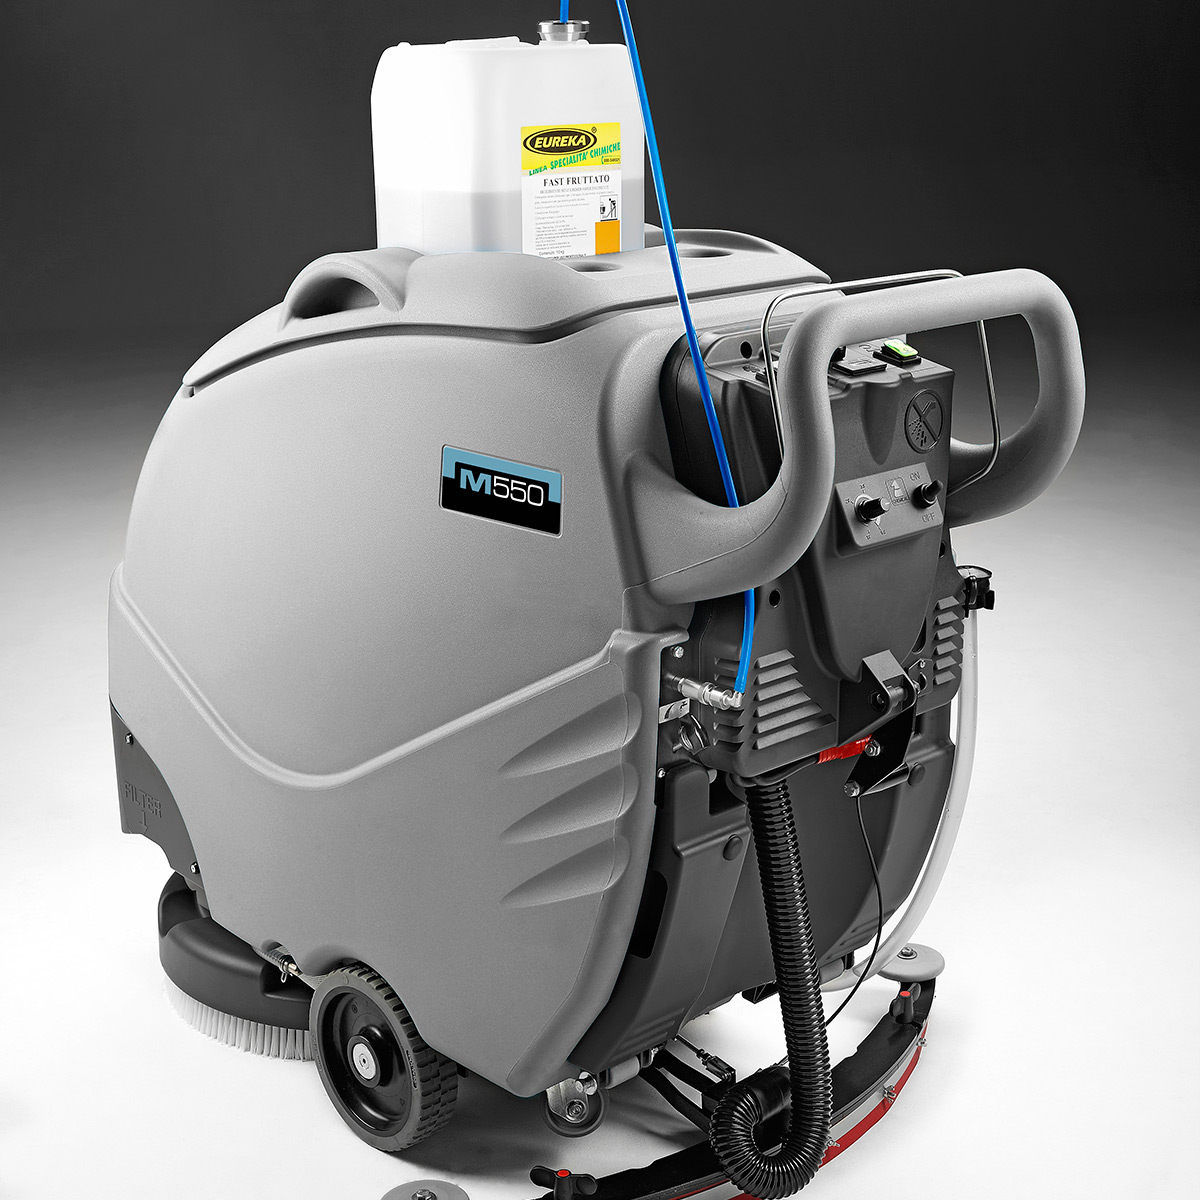 MACH M550 WALK BEHIND SCRUBBER WITH DOSE-MATIC SYSTEM